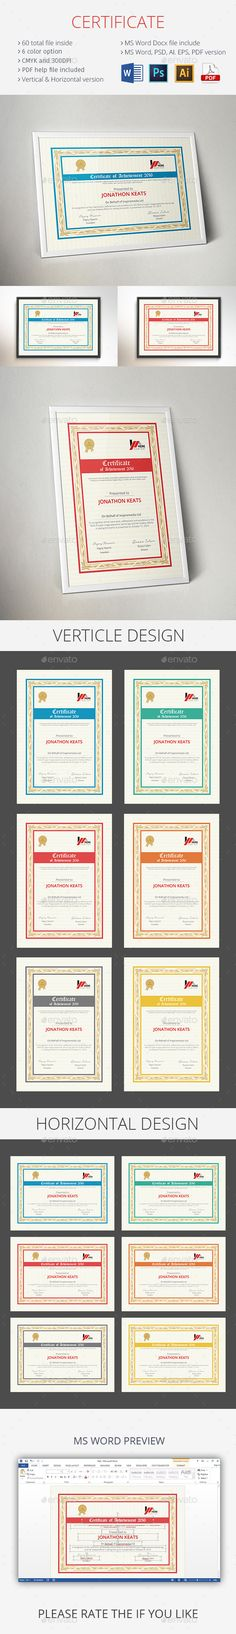 Certificate Certificate templates, Certificate design and Brand - certificate template download